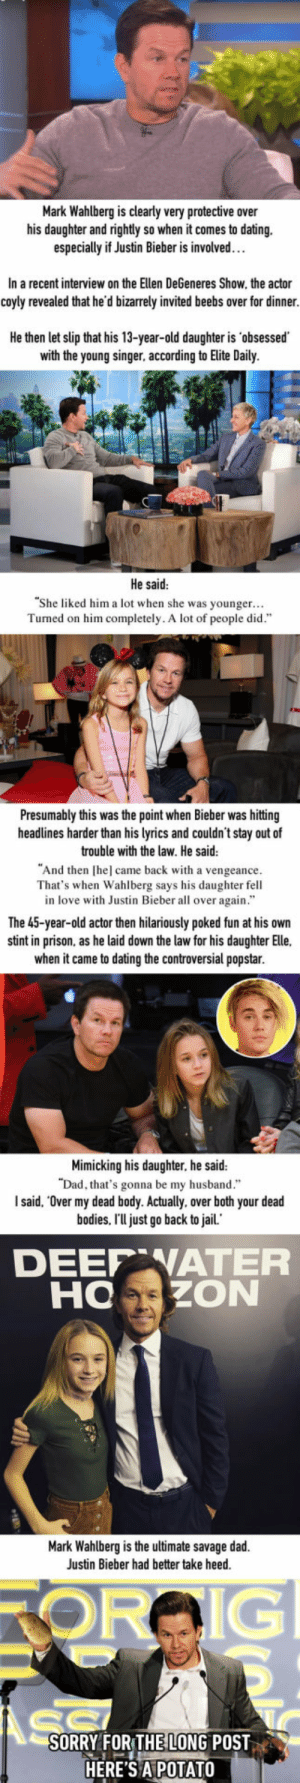 "Bodies , Dad, and Dating: Mark Wahlberg is clearly very protective over  his daughter and rightly so when it comes to dating.  especially if Justin Bieber is involved…  In a recent interview on the Ellen DeGeneres Show, the actor  coyly revealed that he'd bizarrely invited beebs over for dinner.  He then let slip that his 13-year-old daughter is 'obsessed  with the young singer, according to Elite Daily.  He said  She liked him a lot when she was younger...  Turned on him completely. A lot of people did""  Presumably this was the point when Bieber was hittng  headlines harder than his lyrics and couldn't stay out of  trouble with the law. He said  ""And then [hel came back with a vengeance  That's when Wahlberg says his daughter fell  in love with Justin Bieber all over again.""  The 45-year-old actor then hilariously poked fun at his own  stint in prison, as he laid down the law for his daughter Elle.  when it came to dating the controversial popstar.  Mimicking his daughter, he said:  that's gonna be my husband.""  I said, ""Over my dead body. Actually, over both your dead  bodies. I'U just go back to jail.  DEEP WATEFR  HOZON  Mark Wahlberg is the ultimate savage dad.  Justin Bieber had better take heed.  SORRY FOR THE LONG POST  HERE'S APOTATO Mark Wahlberg Says He'll Go Back To Prison If Justin Bieber Dates His Daughter"